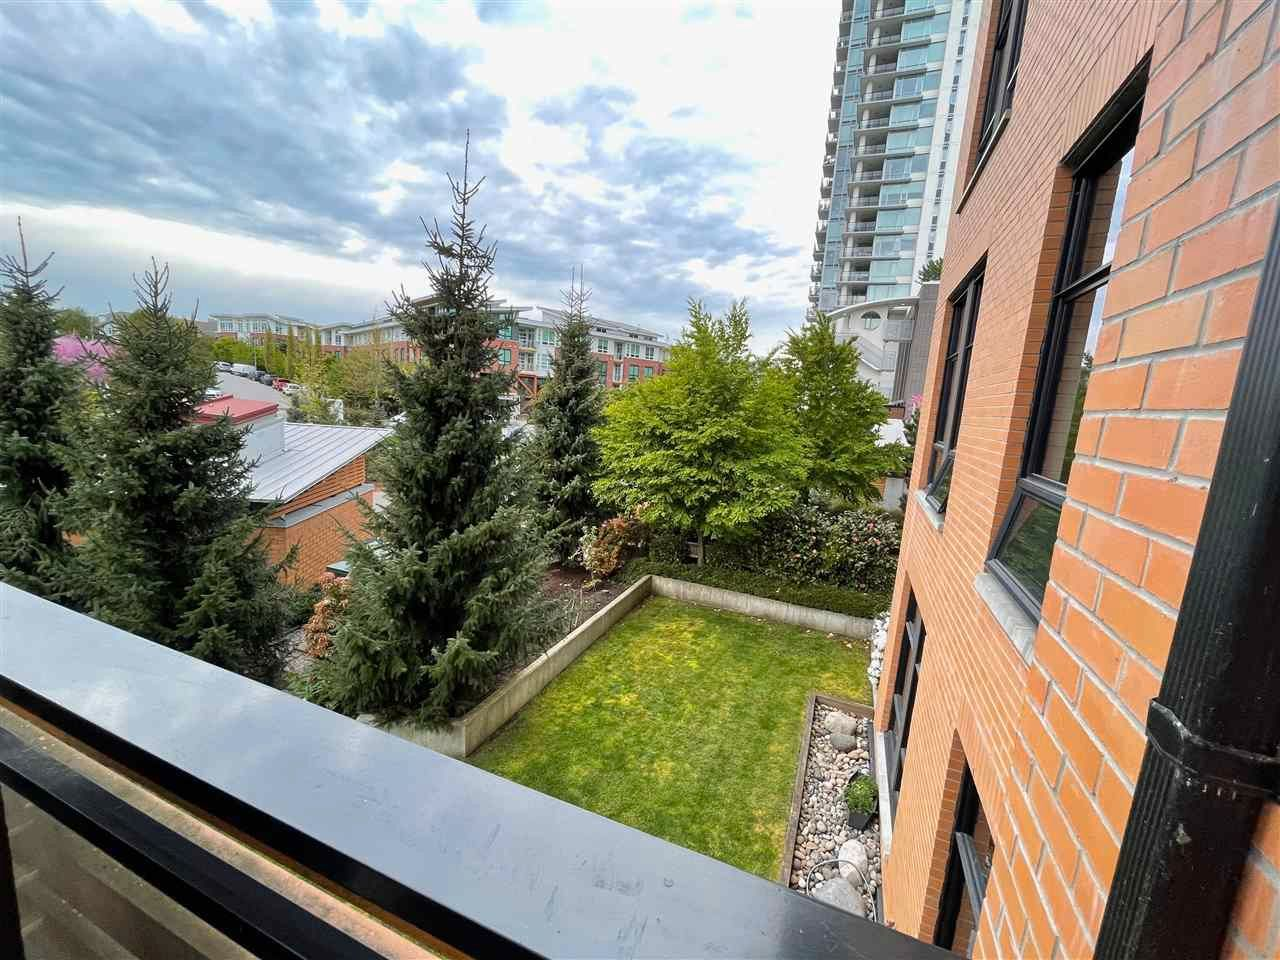 Photo 13: Photos: 205 220 SALTER Street in New Westminster: Queensborough Condo for sale : MLS®# R2588294